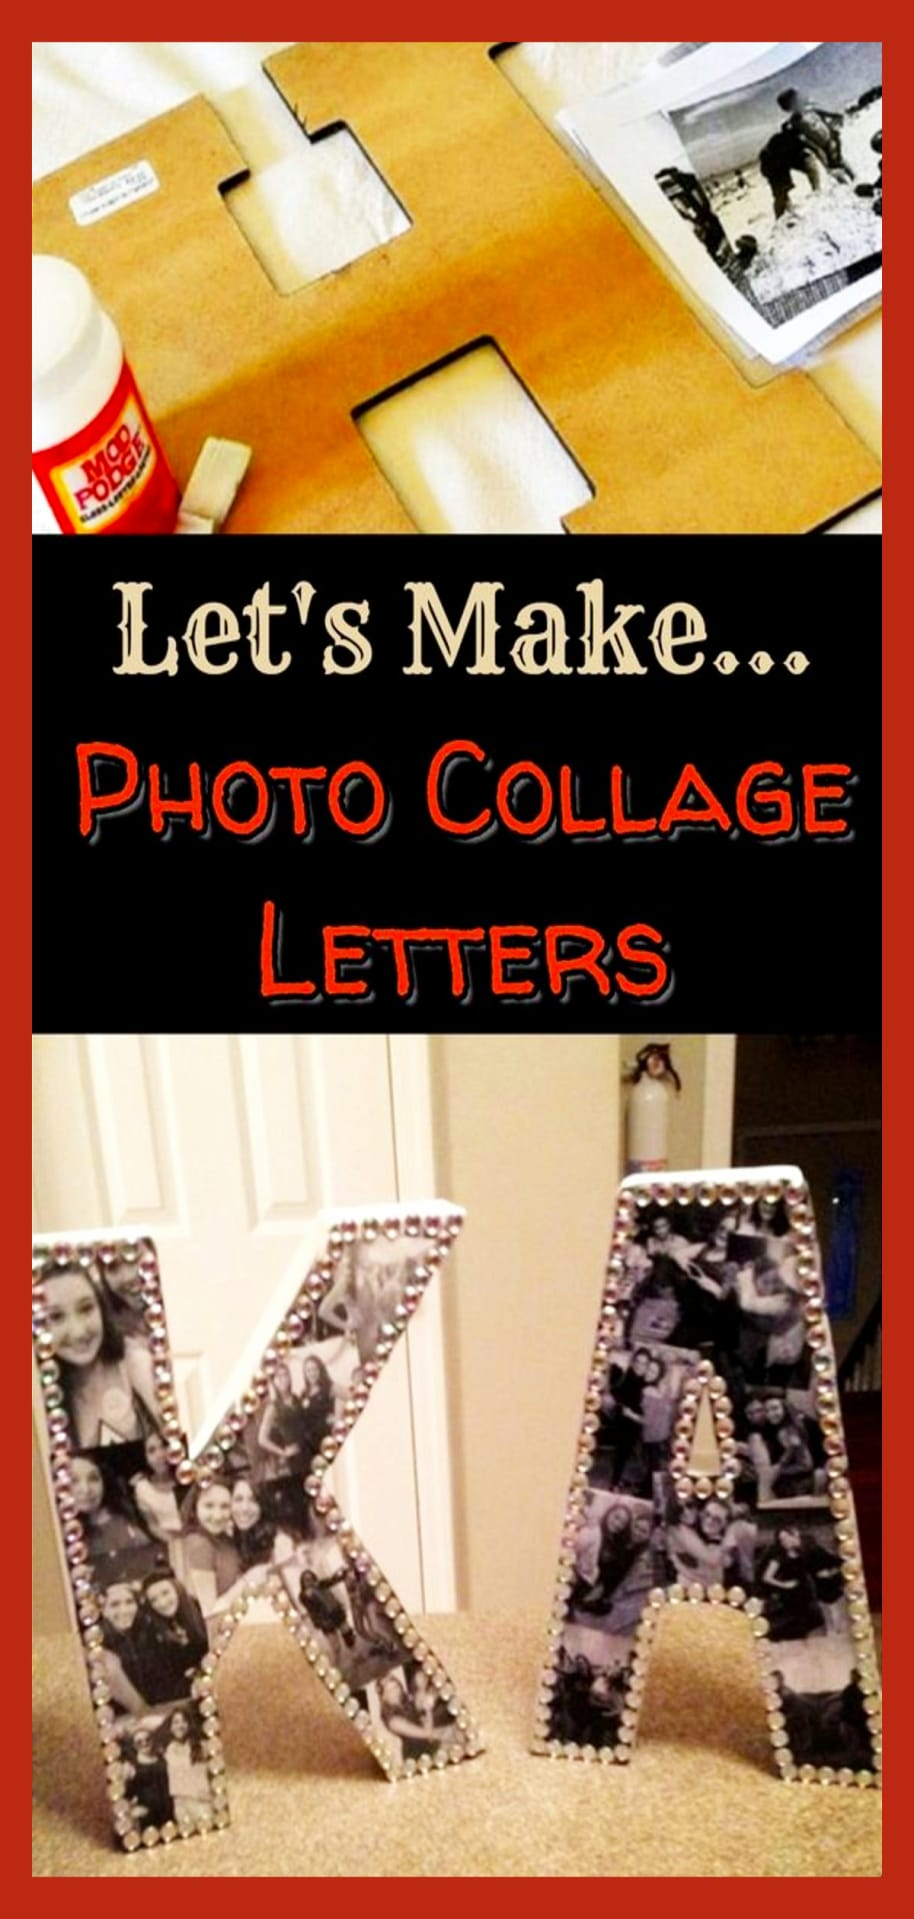 Picture collage ideas - easy DIY picture and photo collage craft projects to make as gifts or as wall decor for your room or dorm room